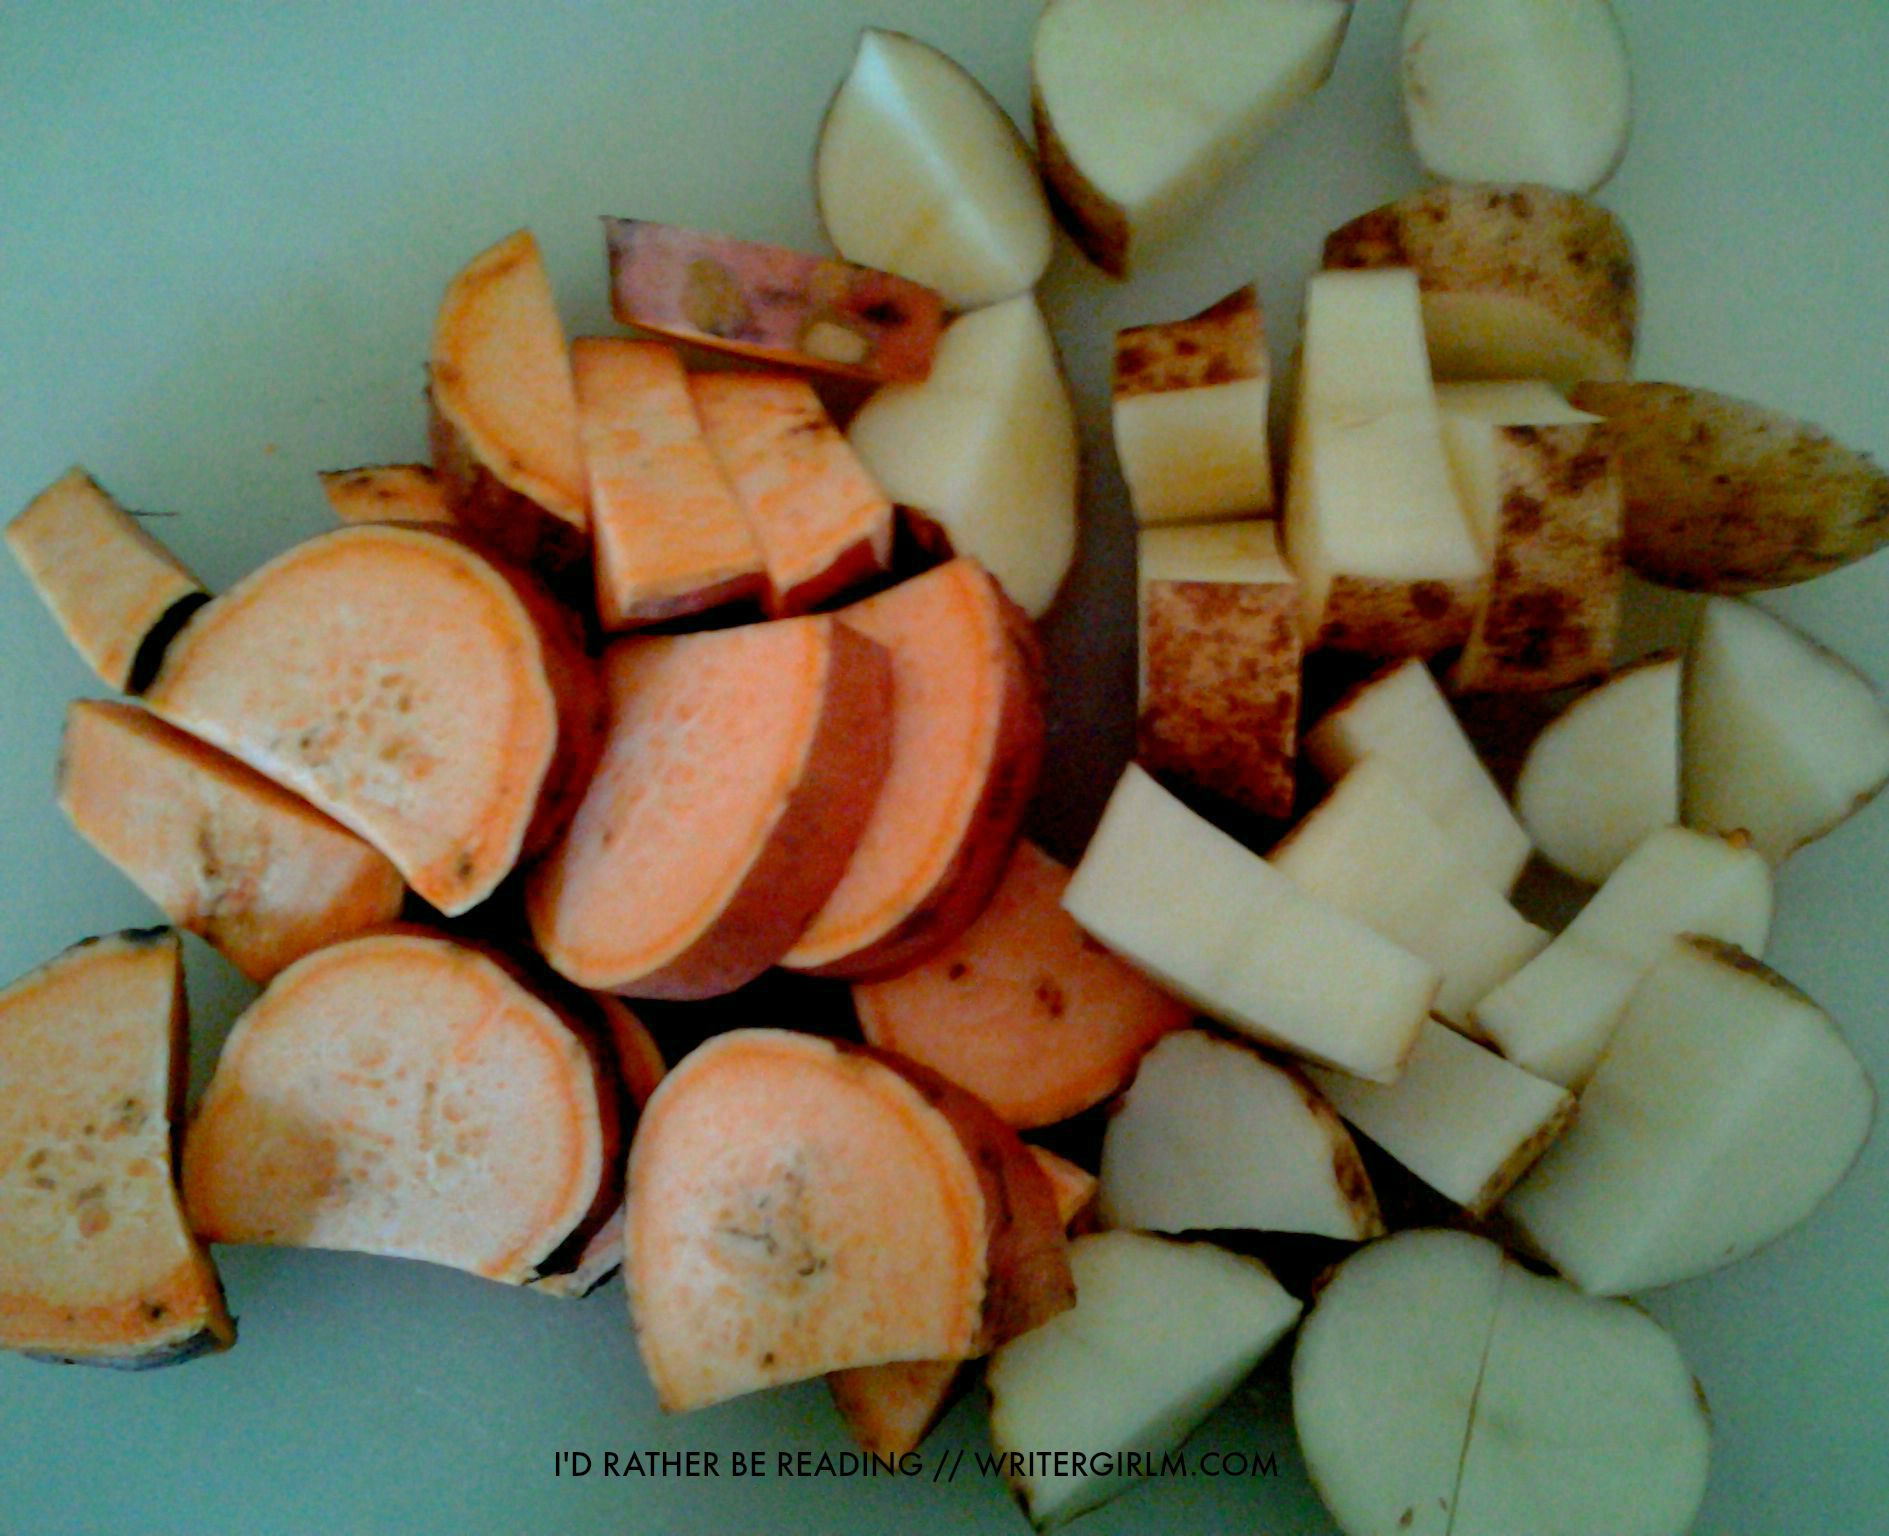 Oven-roasted potatoes, carrots and onions in an Italian dressing